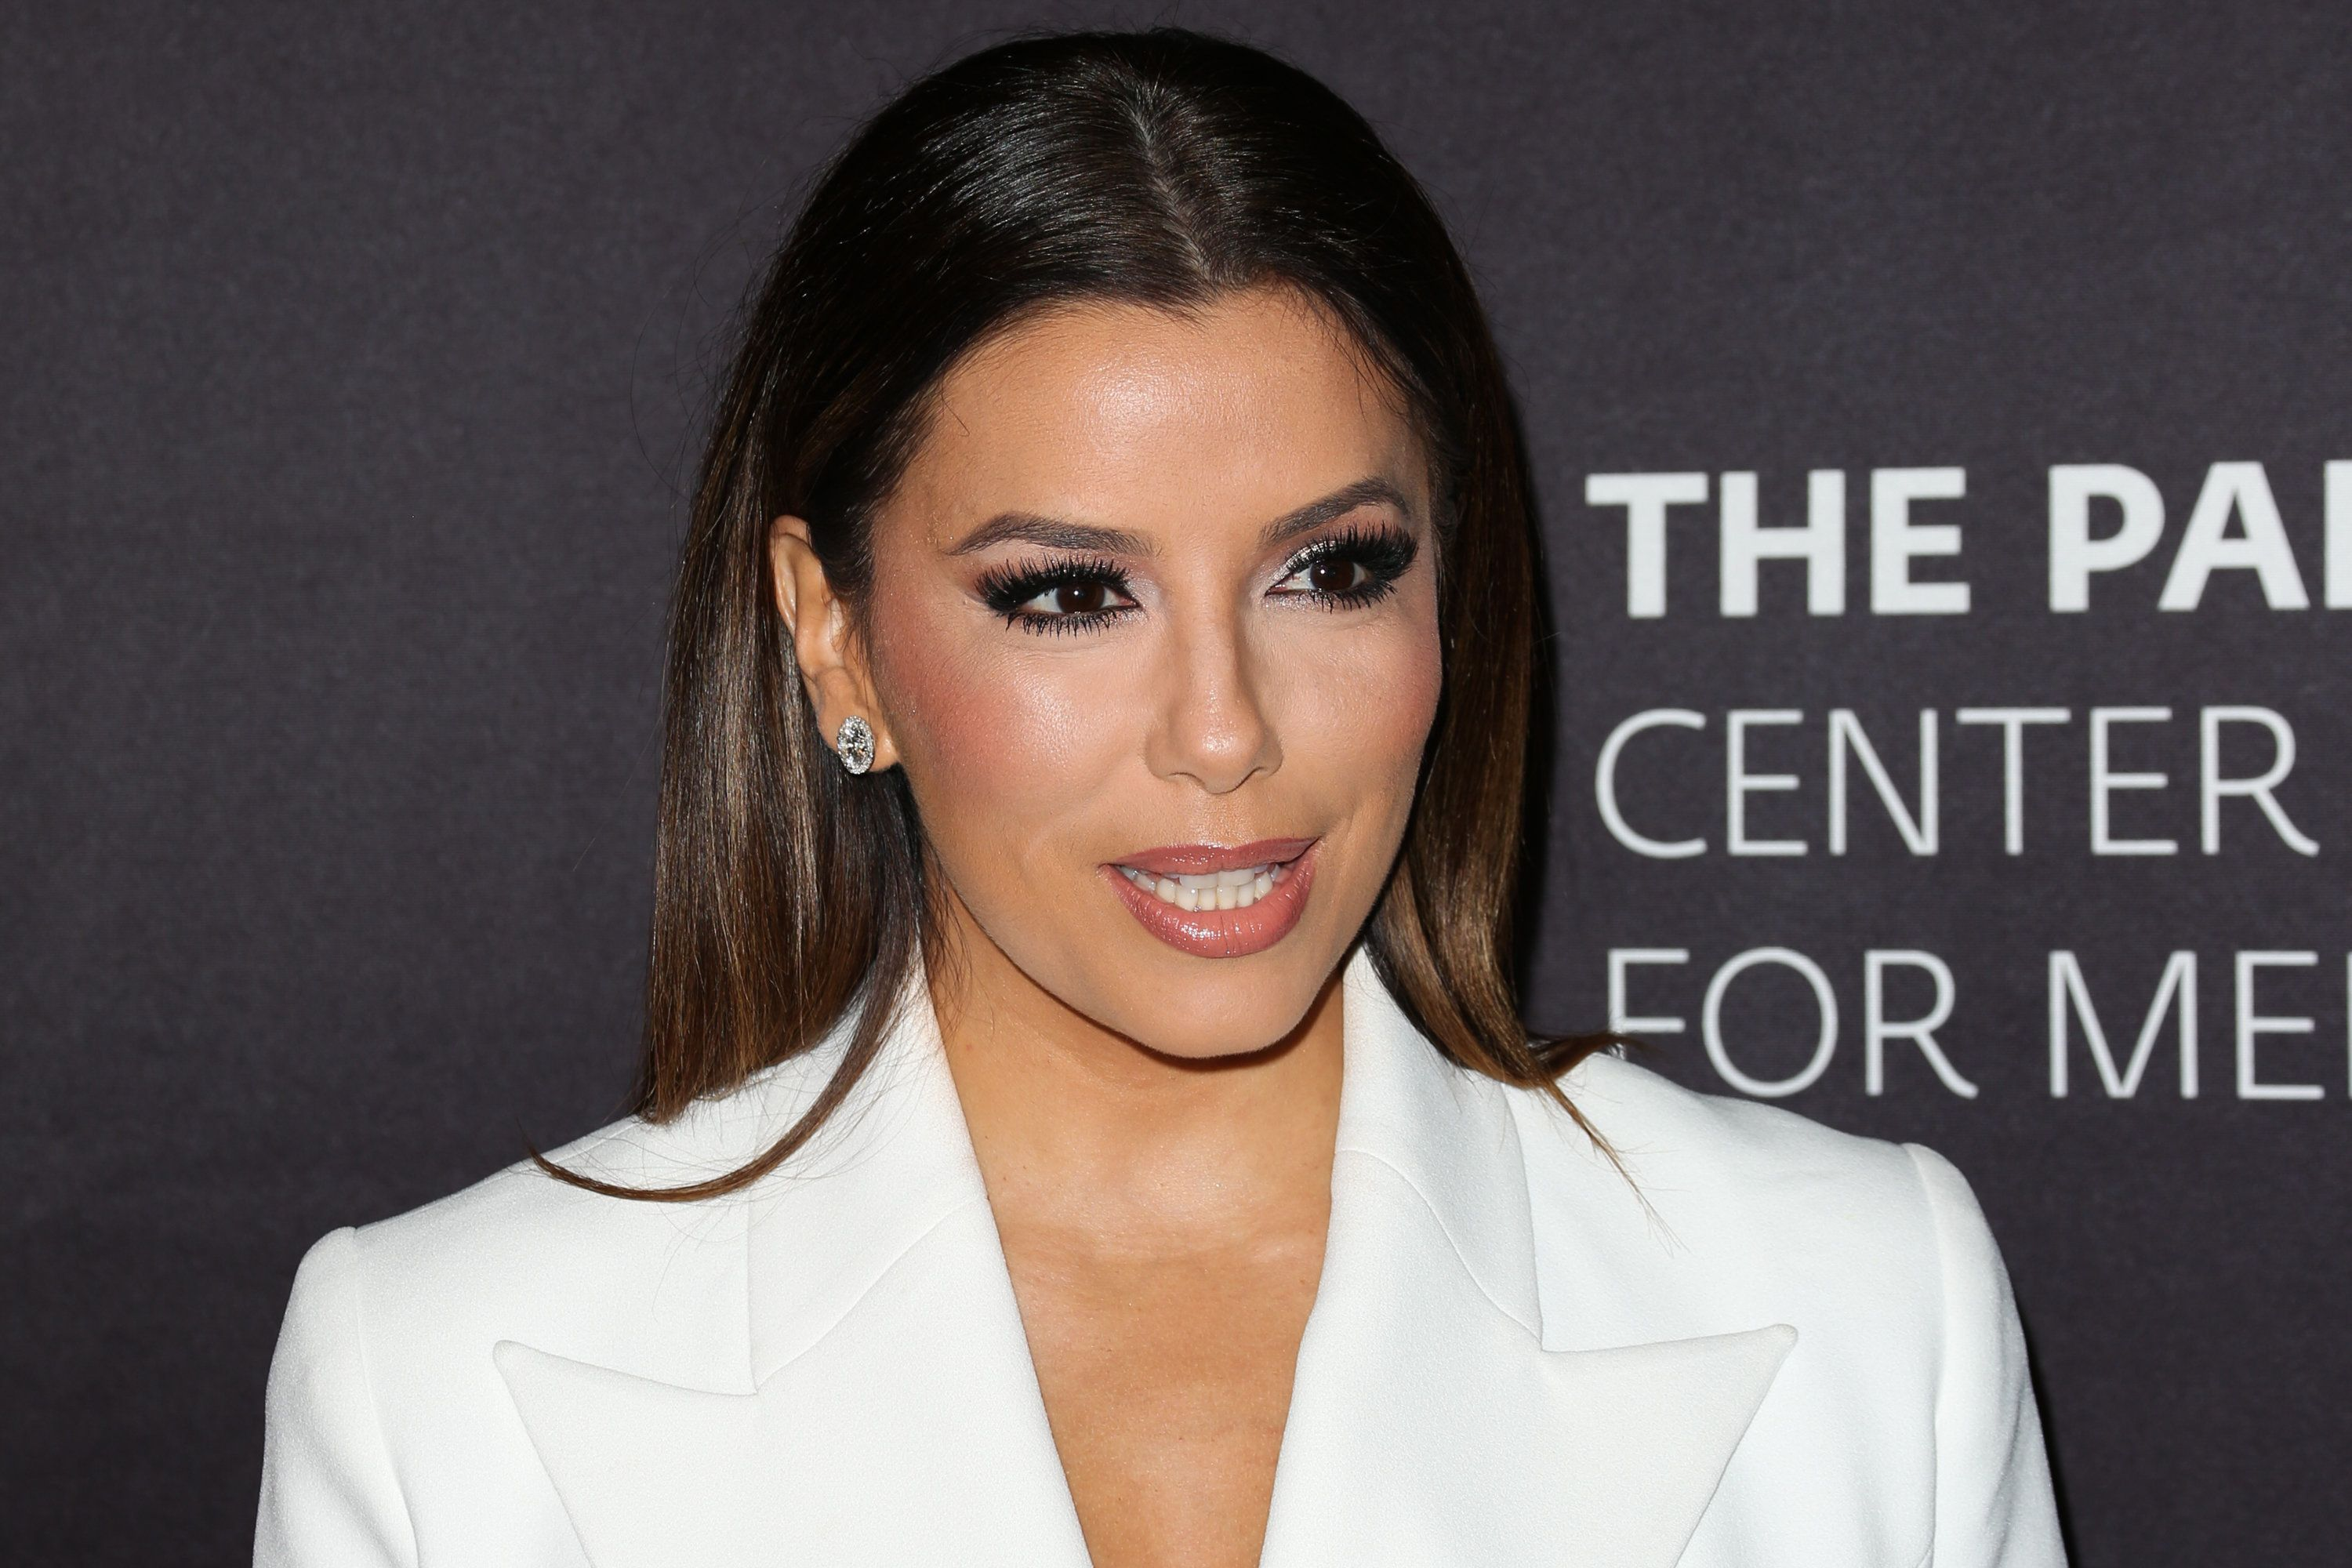 Eva Longoria at the The Paley Center for Media's Hollywood tribute to Hispanic achievements in Oct. 2016.